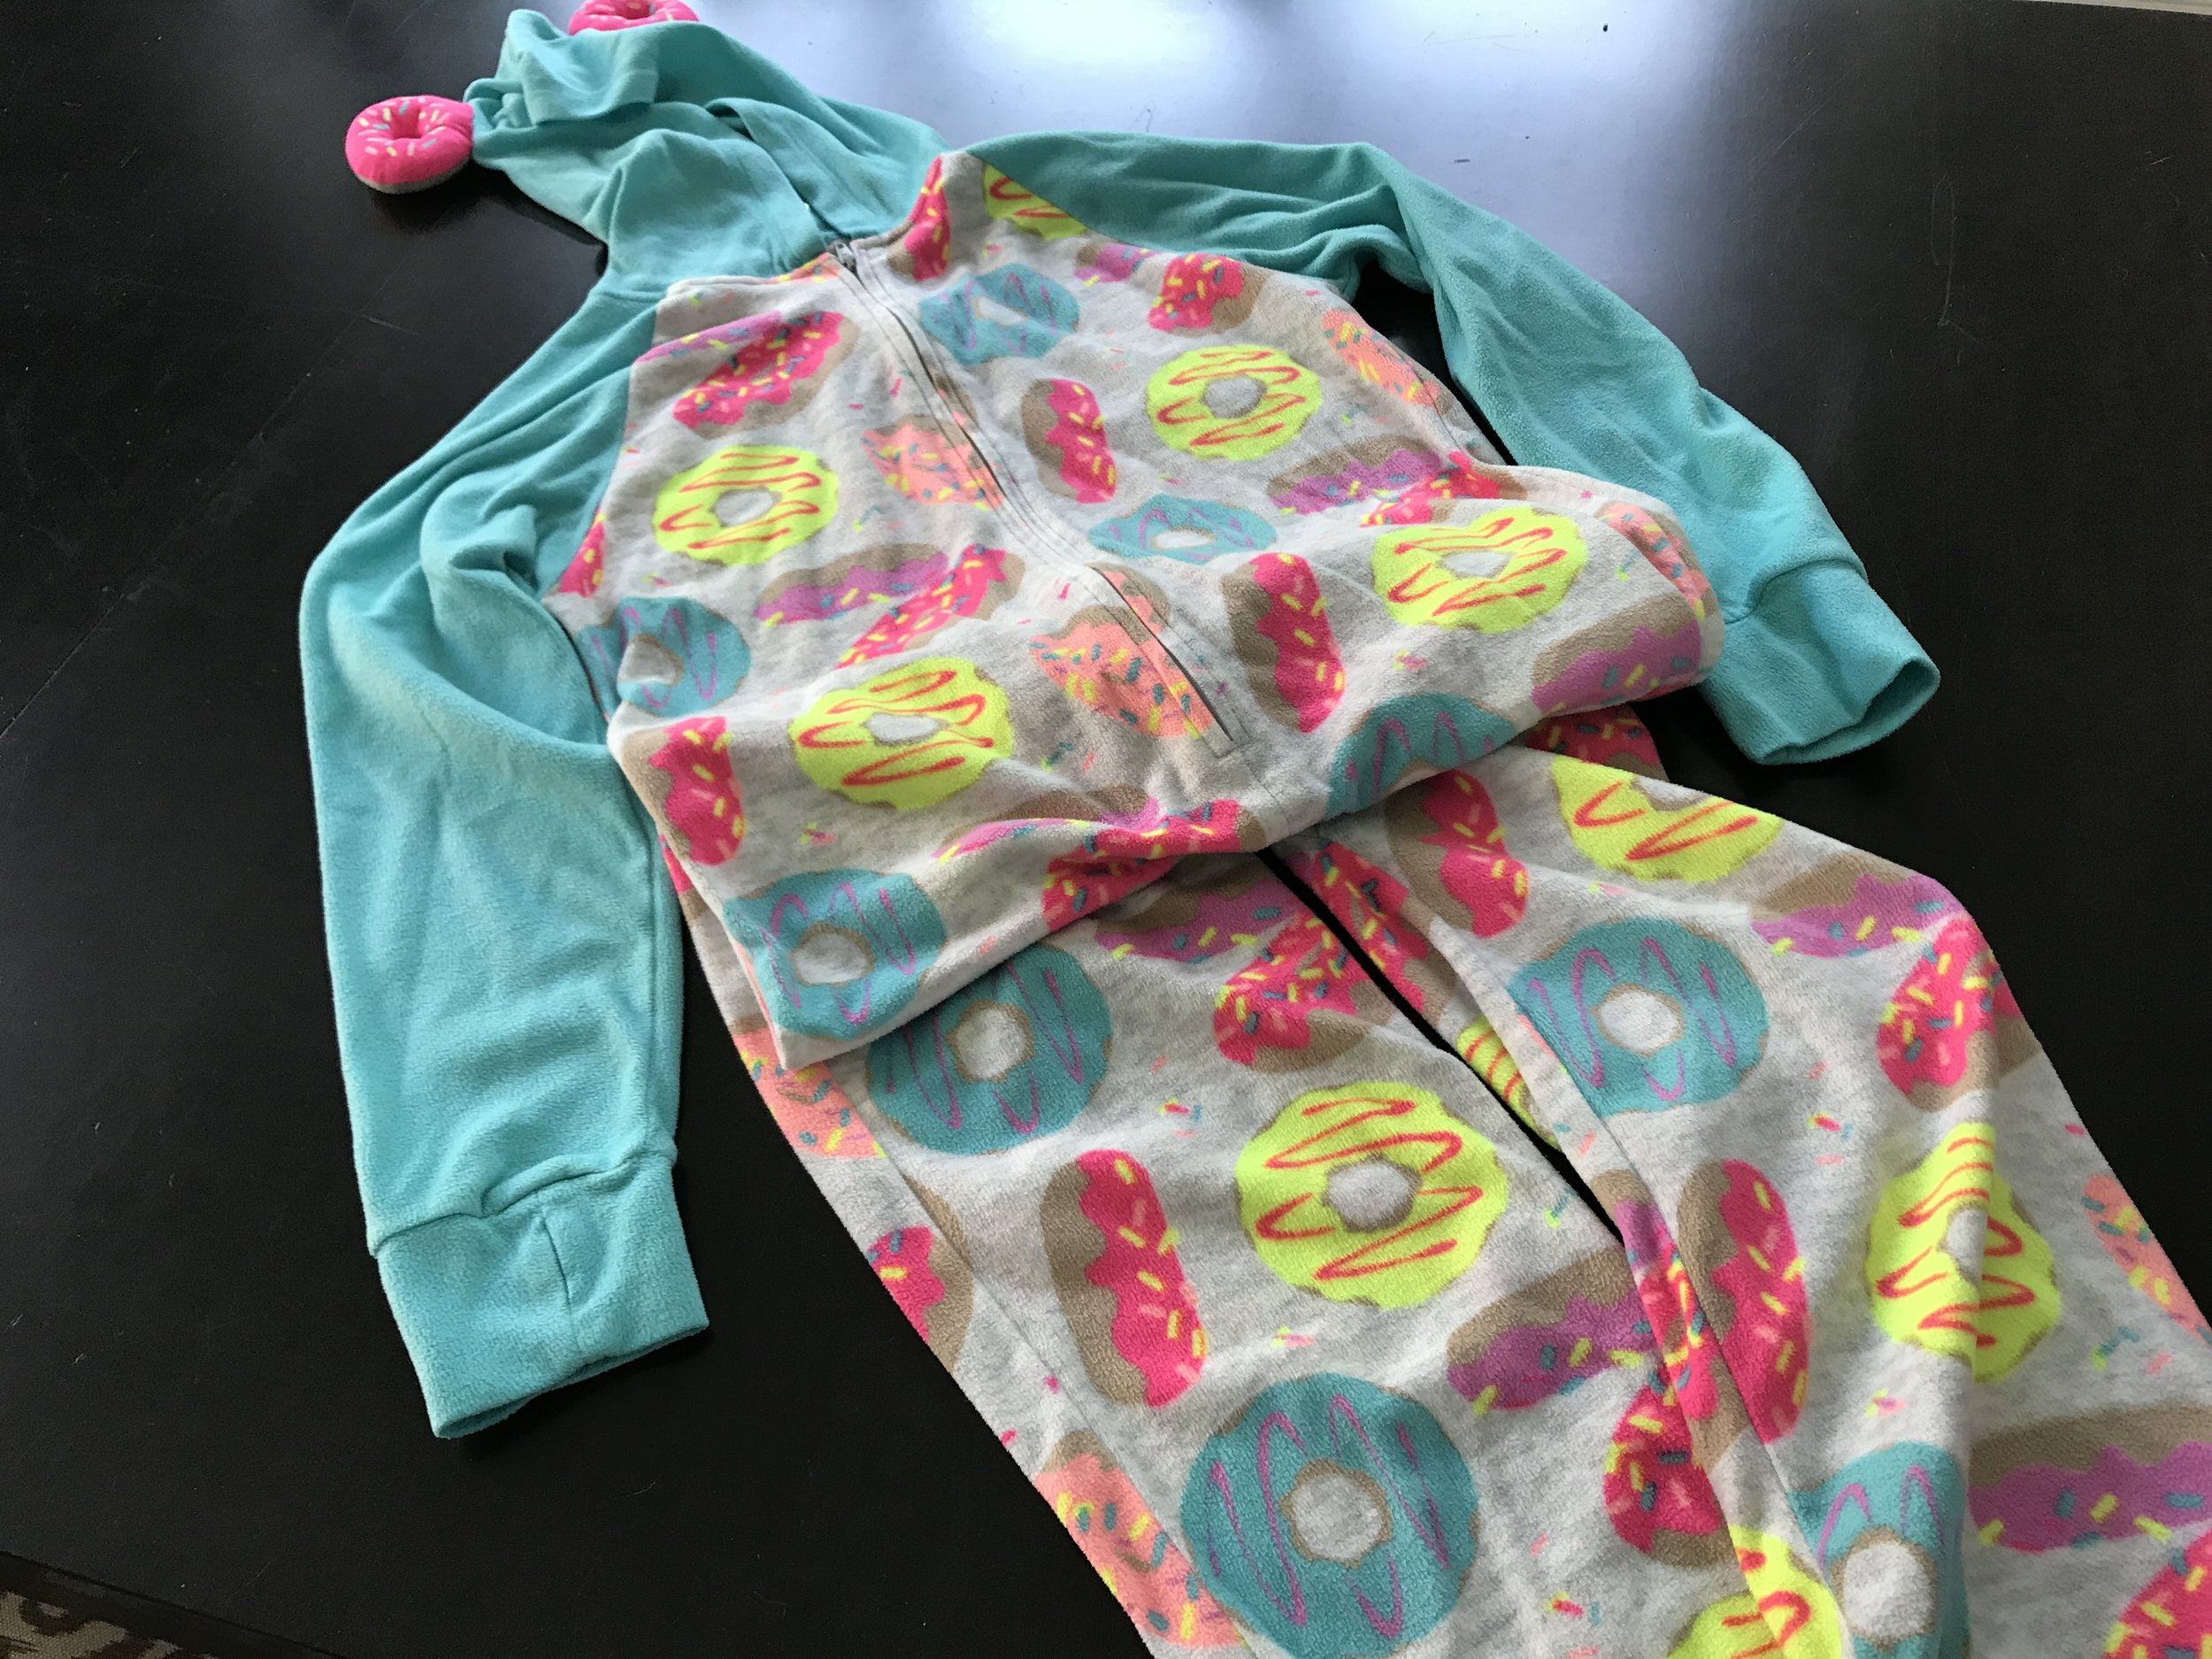 My daughter went to her first sleepover and the party favors included a personalized toiletry bag AND these awesome pajamas! It was as if each guest came home with birthday presents for themselves! Those are donuts, that look like ears, sewn onto the hood. Adorable!